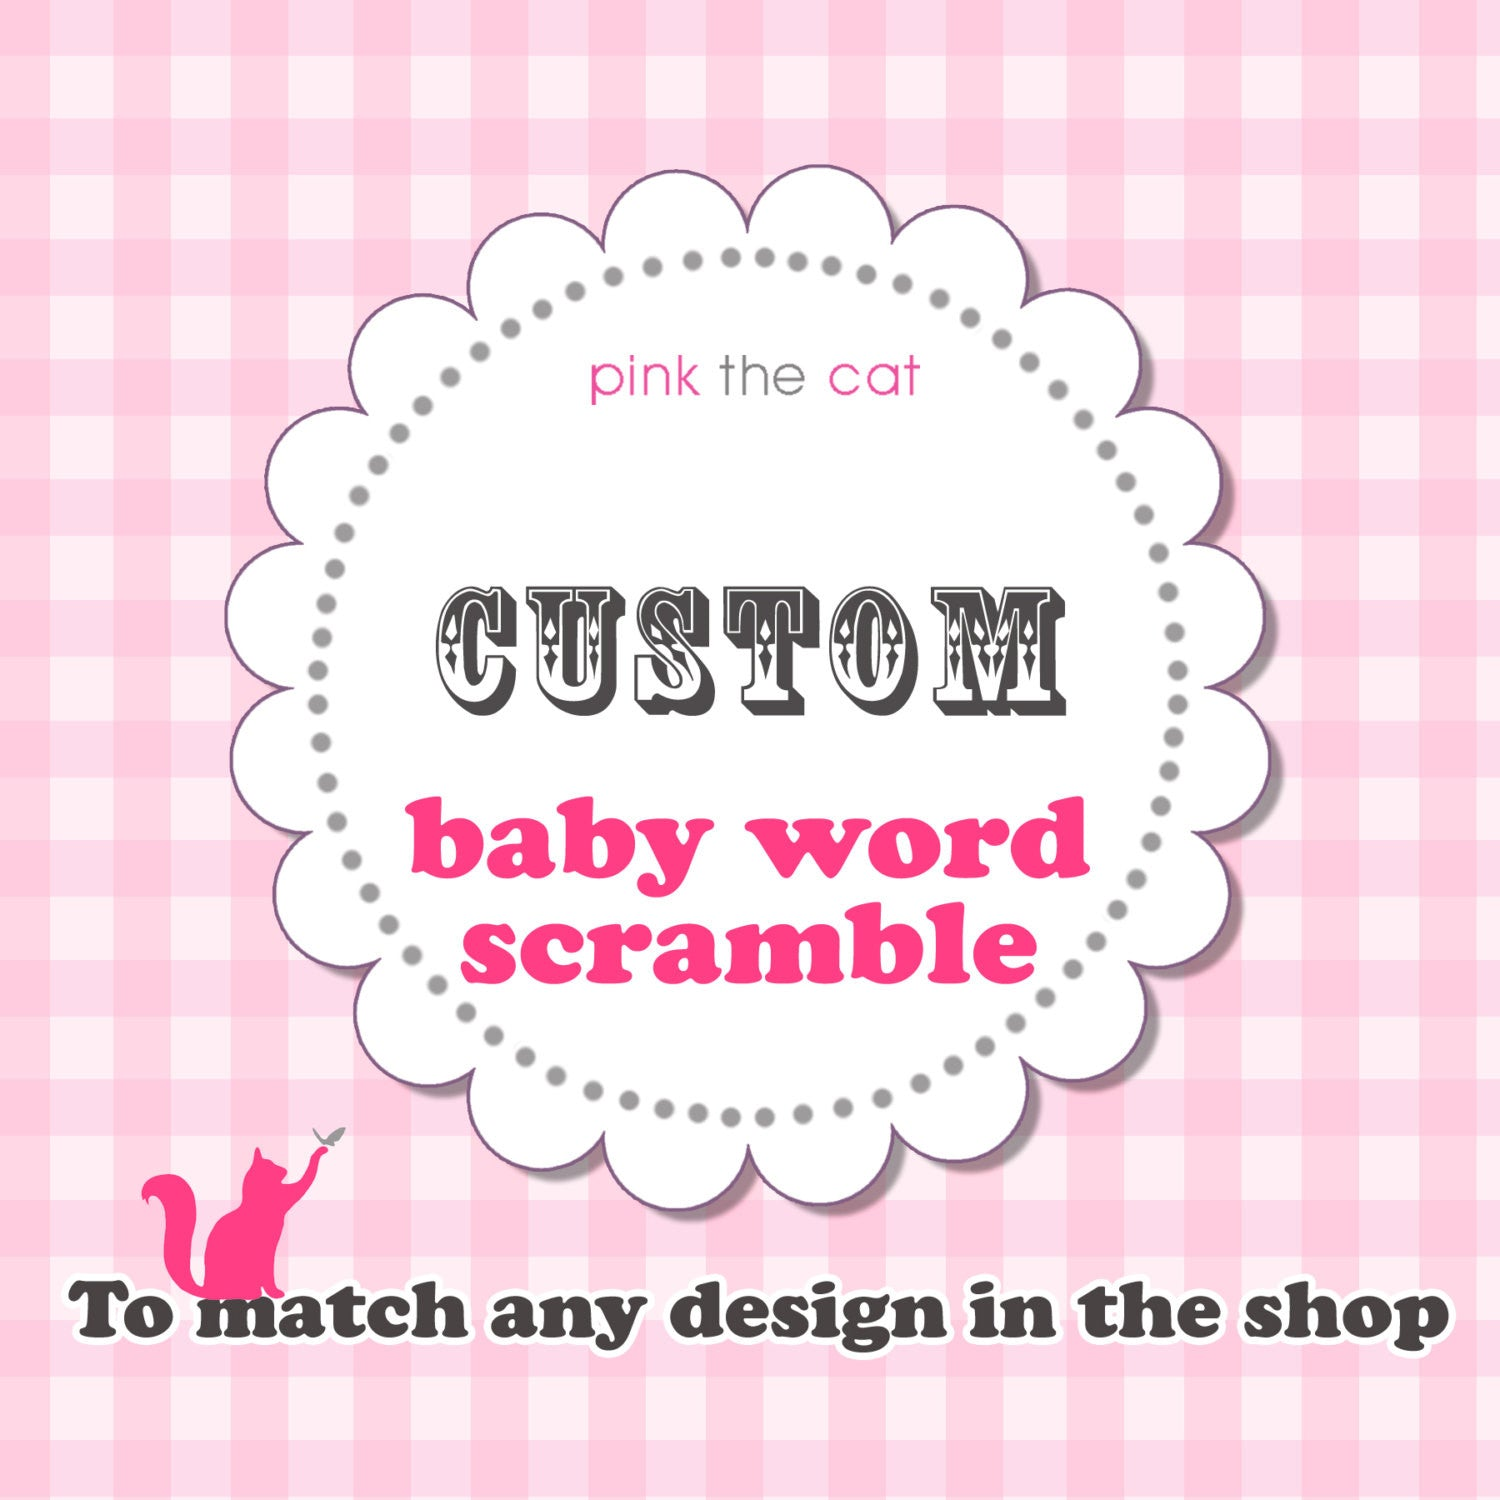 graphic about Printable Baby Word Scramble named Printable Youngster Term Scramble Sport